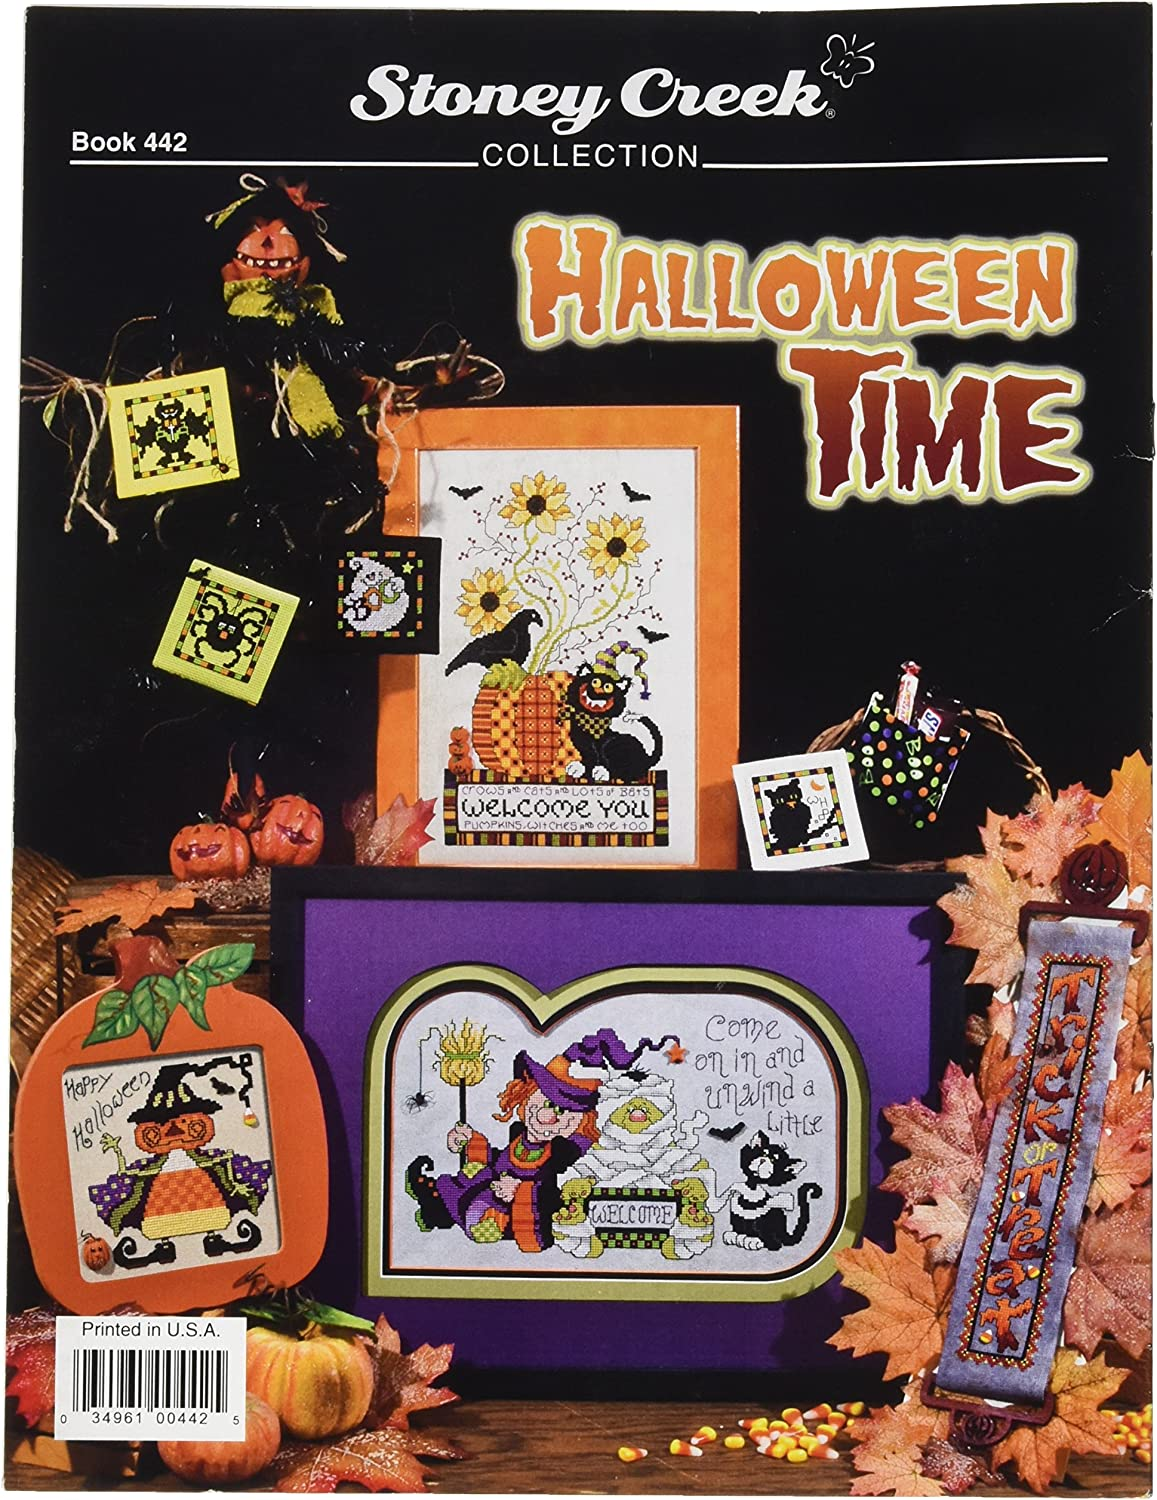 Stoney Creek Halloween Time Book